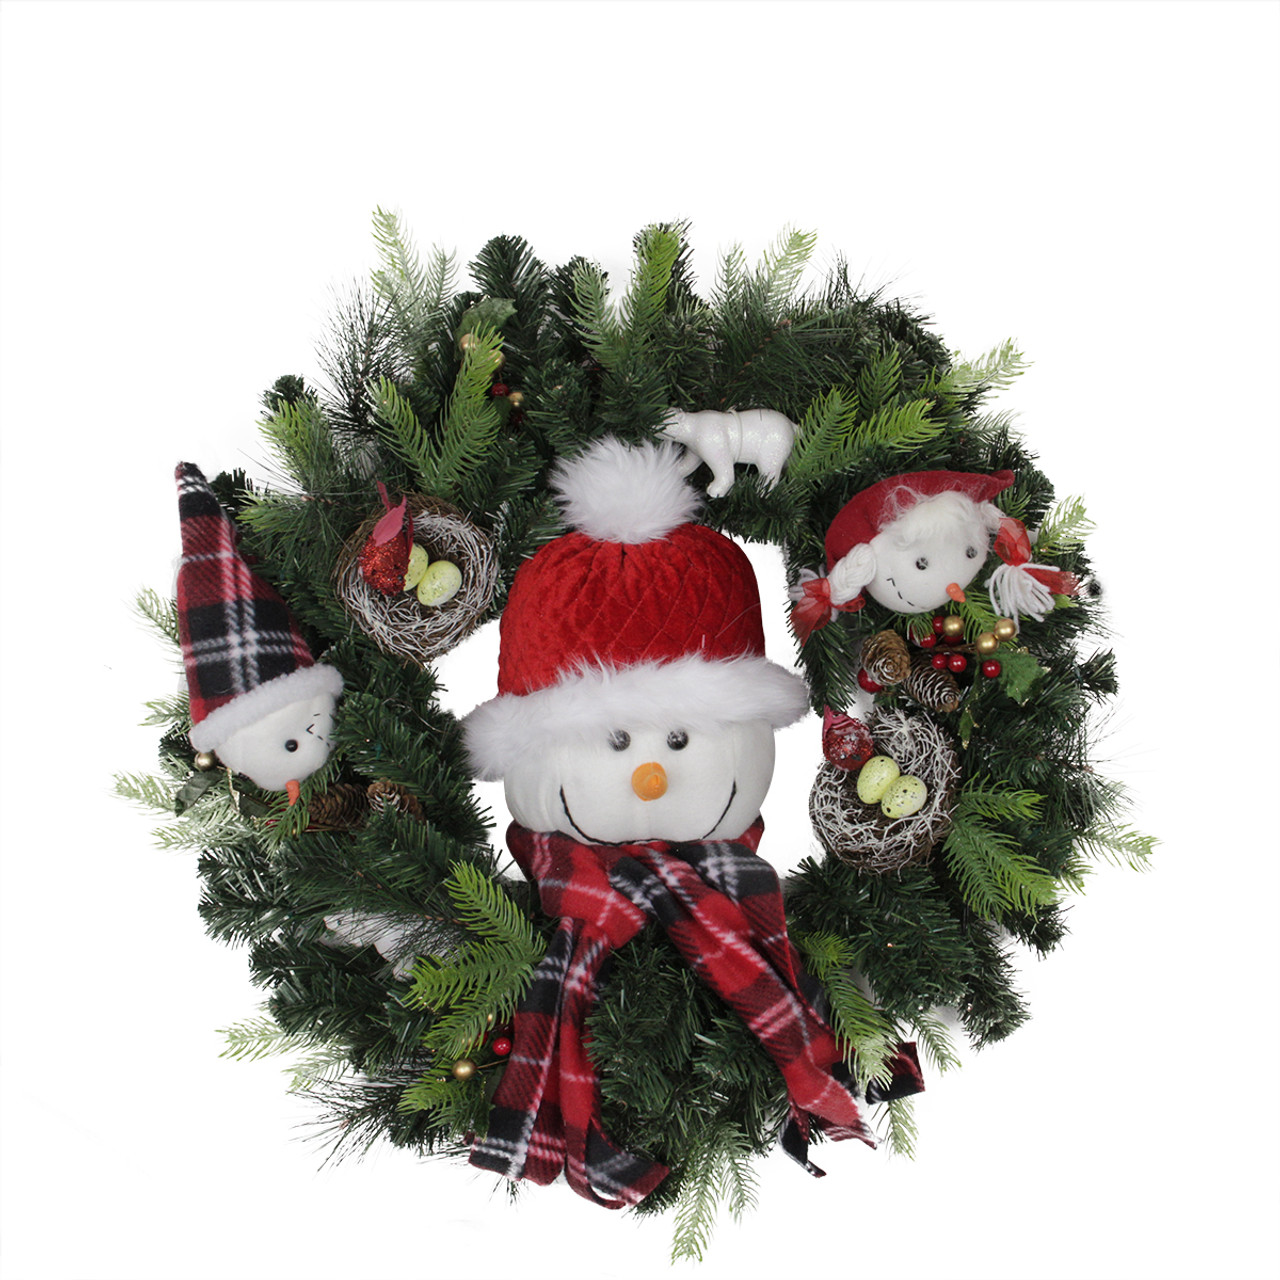 24 pre lit battery operated musical artificial christmas wreath warm clear led lights 31743621 - Pre Lit Battery Operated Christmas Wreath